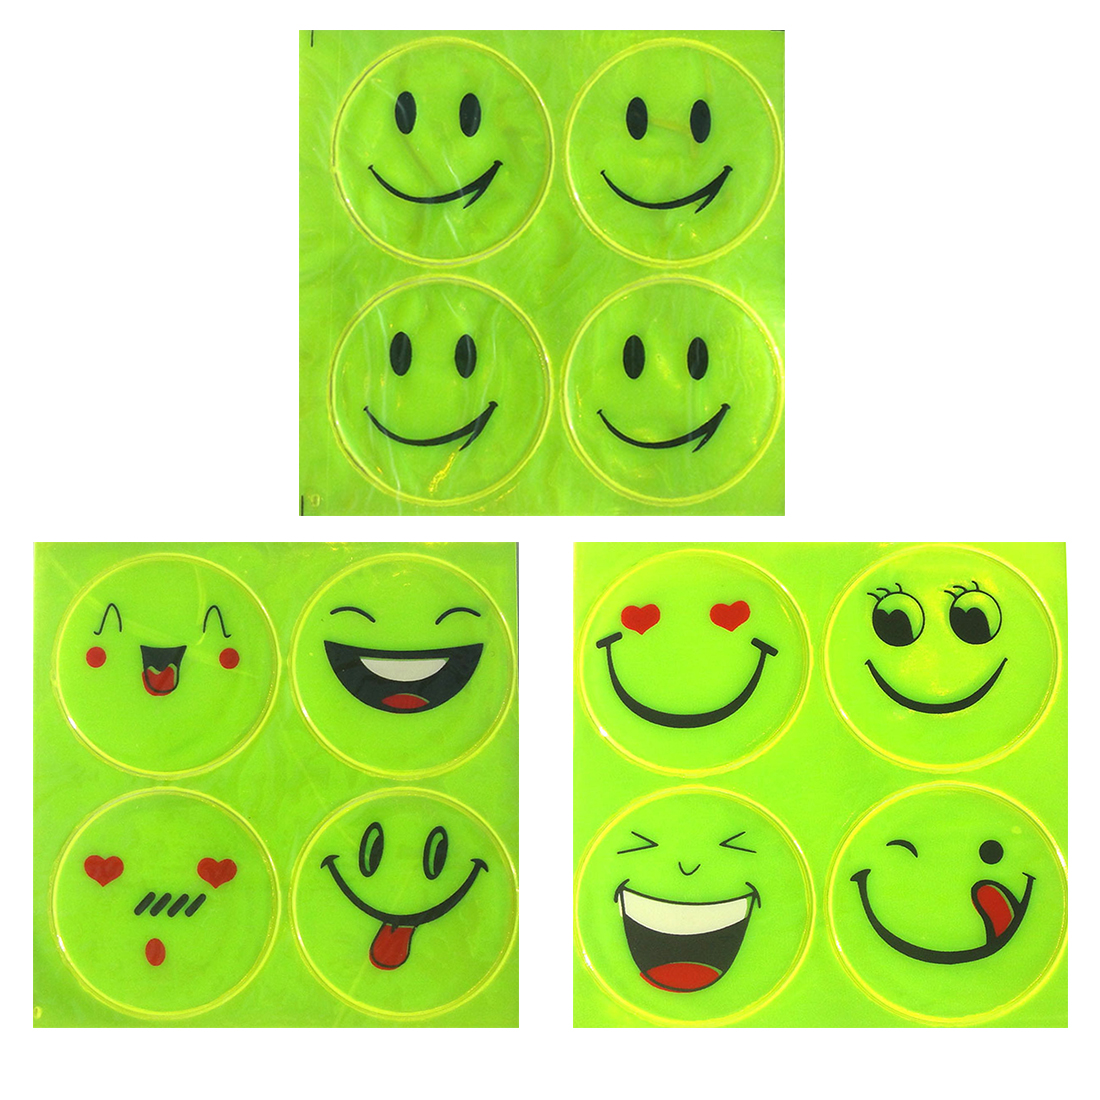 Dewtreetali New Arrival Reflective Sticker Small Smile Face For Kids School Bag Reflective Motorcycle Scooter For Visible Safety